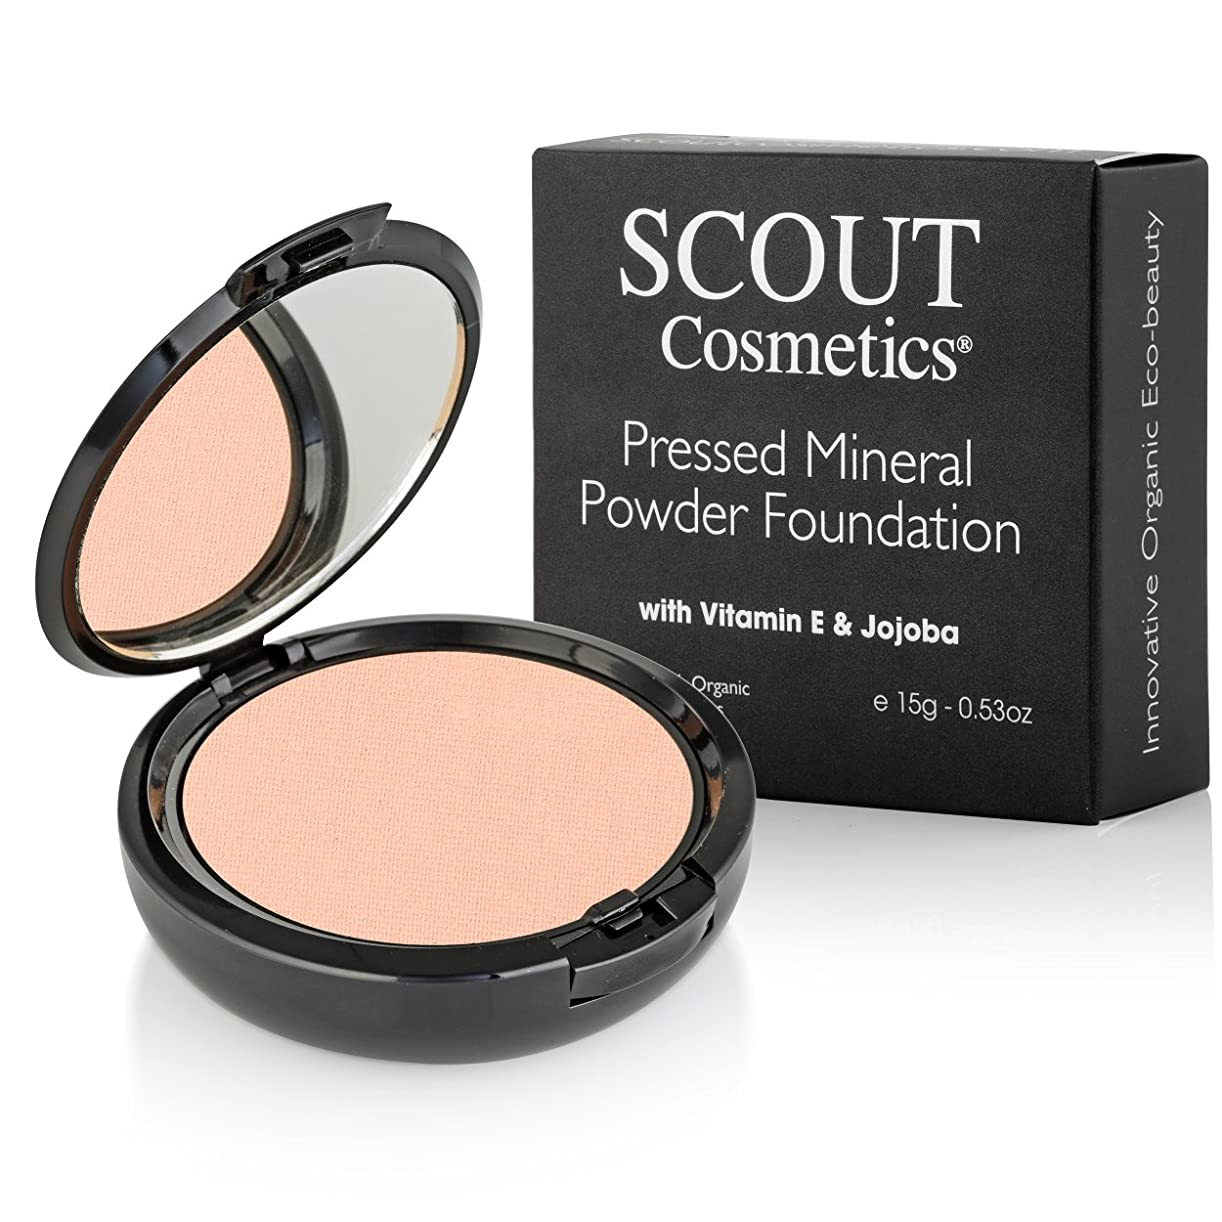 ペインティング全国マグSCOUT Cosmetics Pressed Mineral Powder Foundation SPF 15 - # Sunset 15g/0.53oz並行輸入品